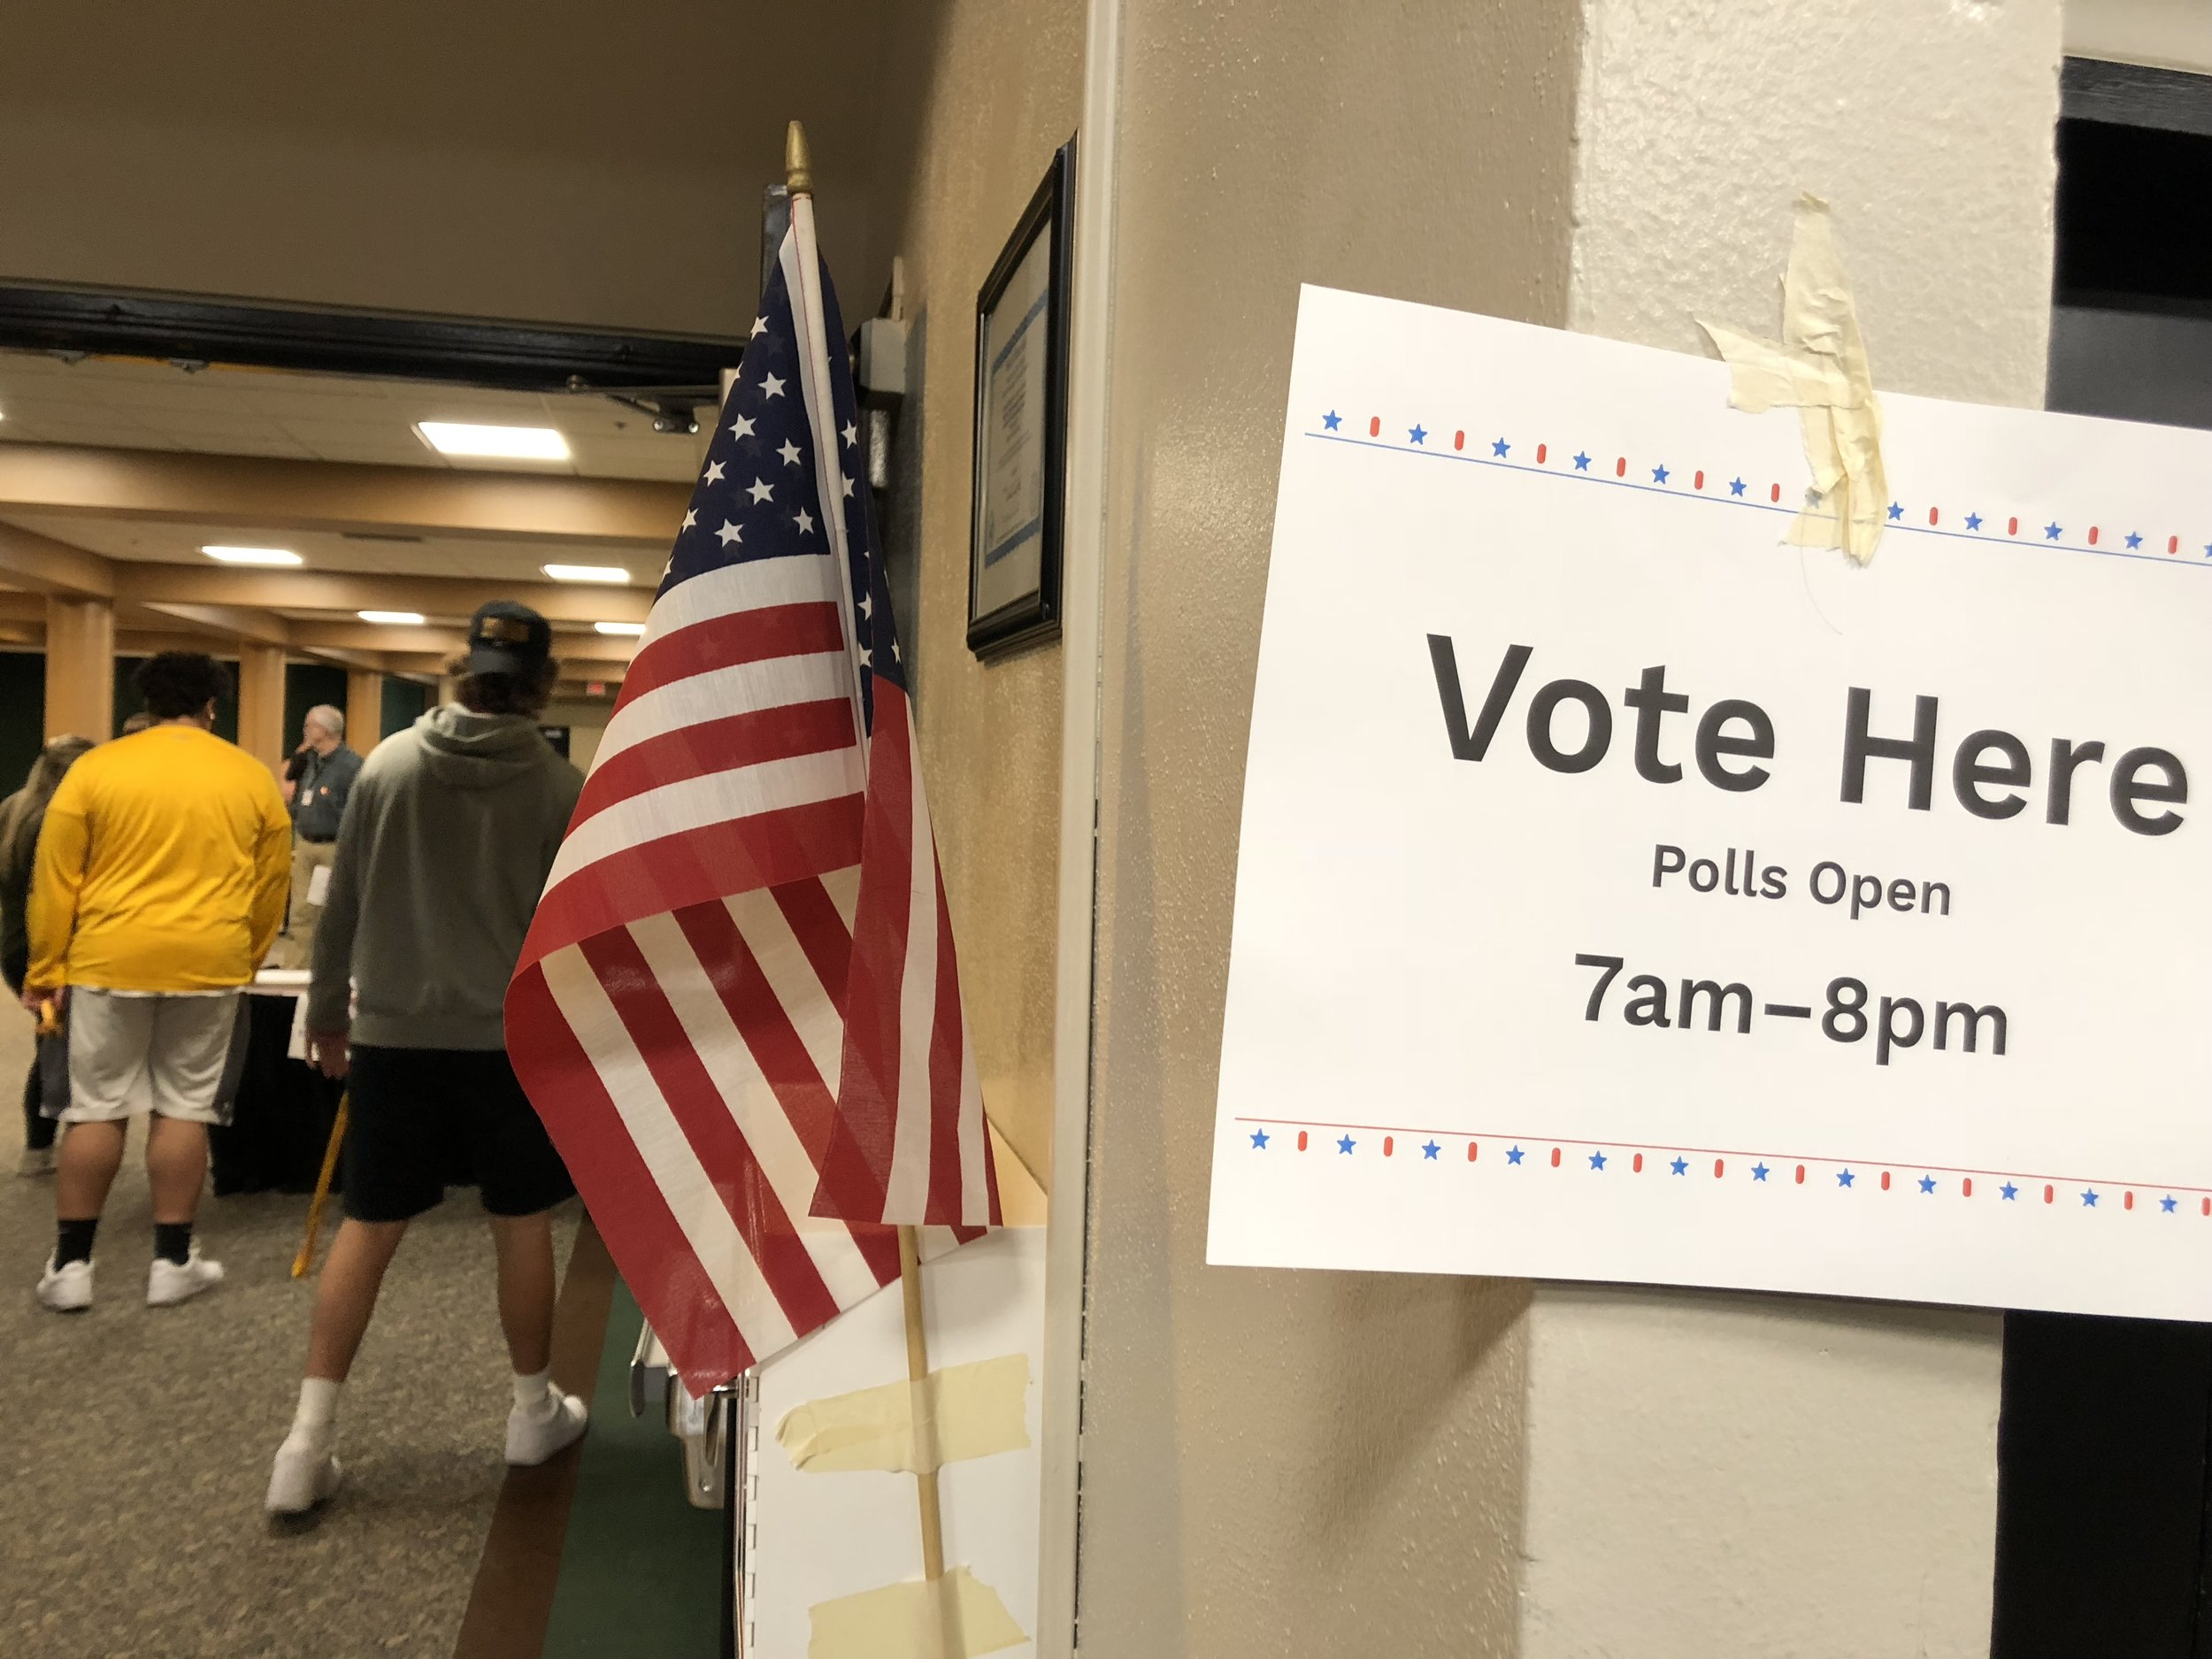 Election day was Nov. 6, polls were open from 7 a.m. to 8 p.m. Photo by Zack Benz